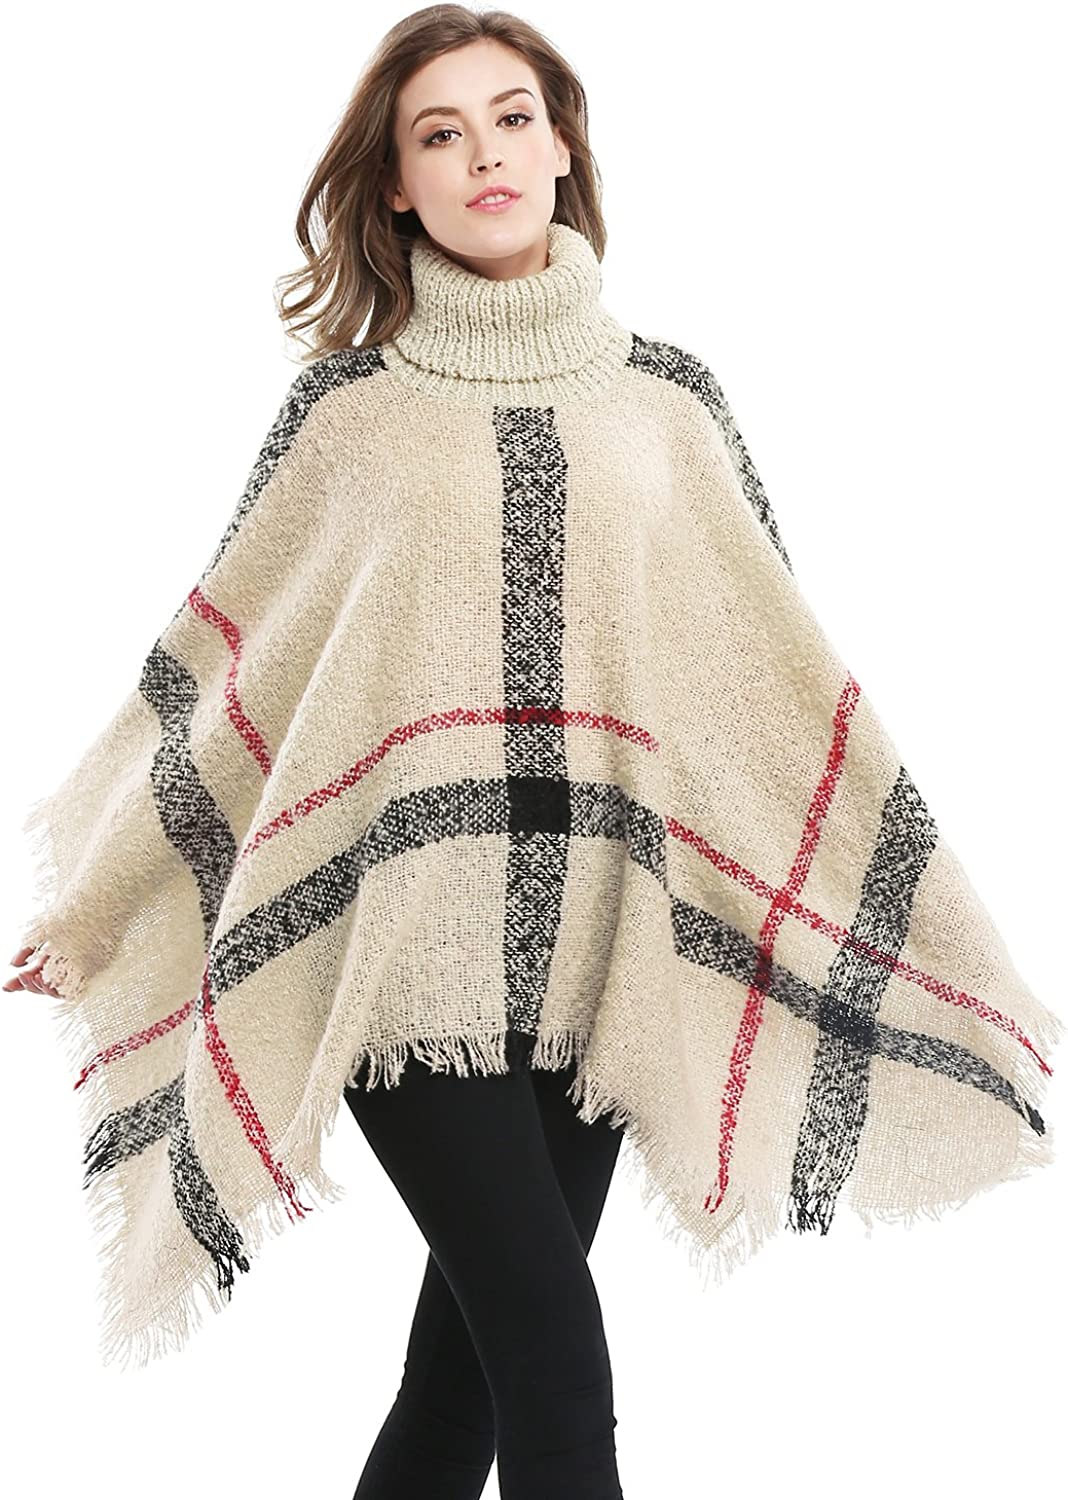 Bellady Women's Pullover Sweaters, Oversized Turtleneck Sweaters Poncho, High Neck Loose Shawl Wrap